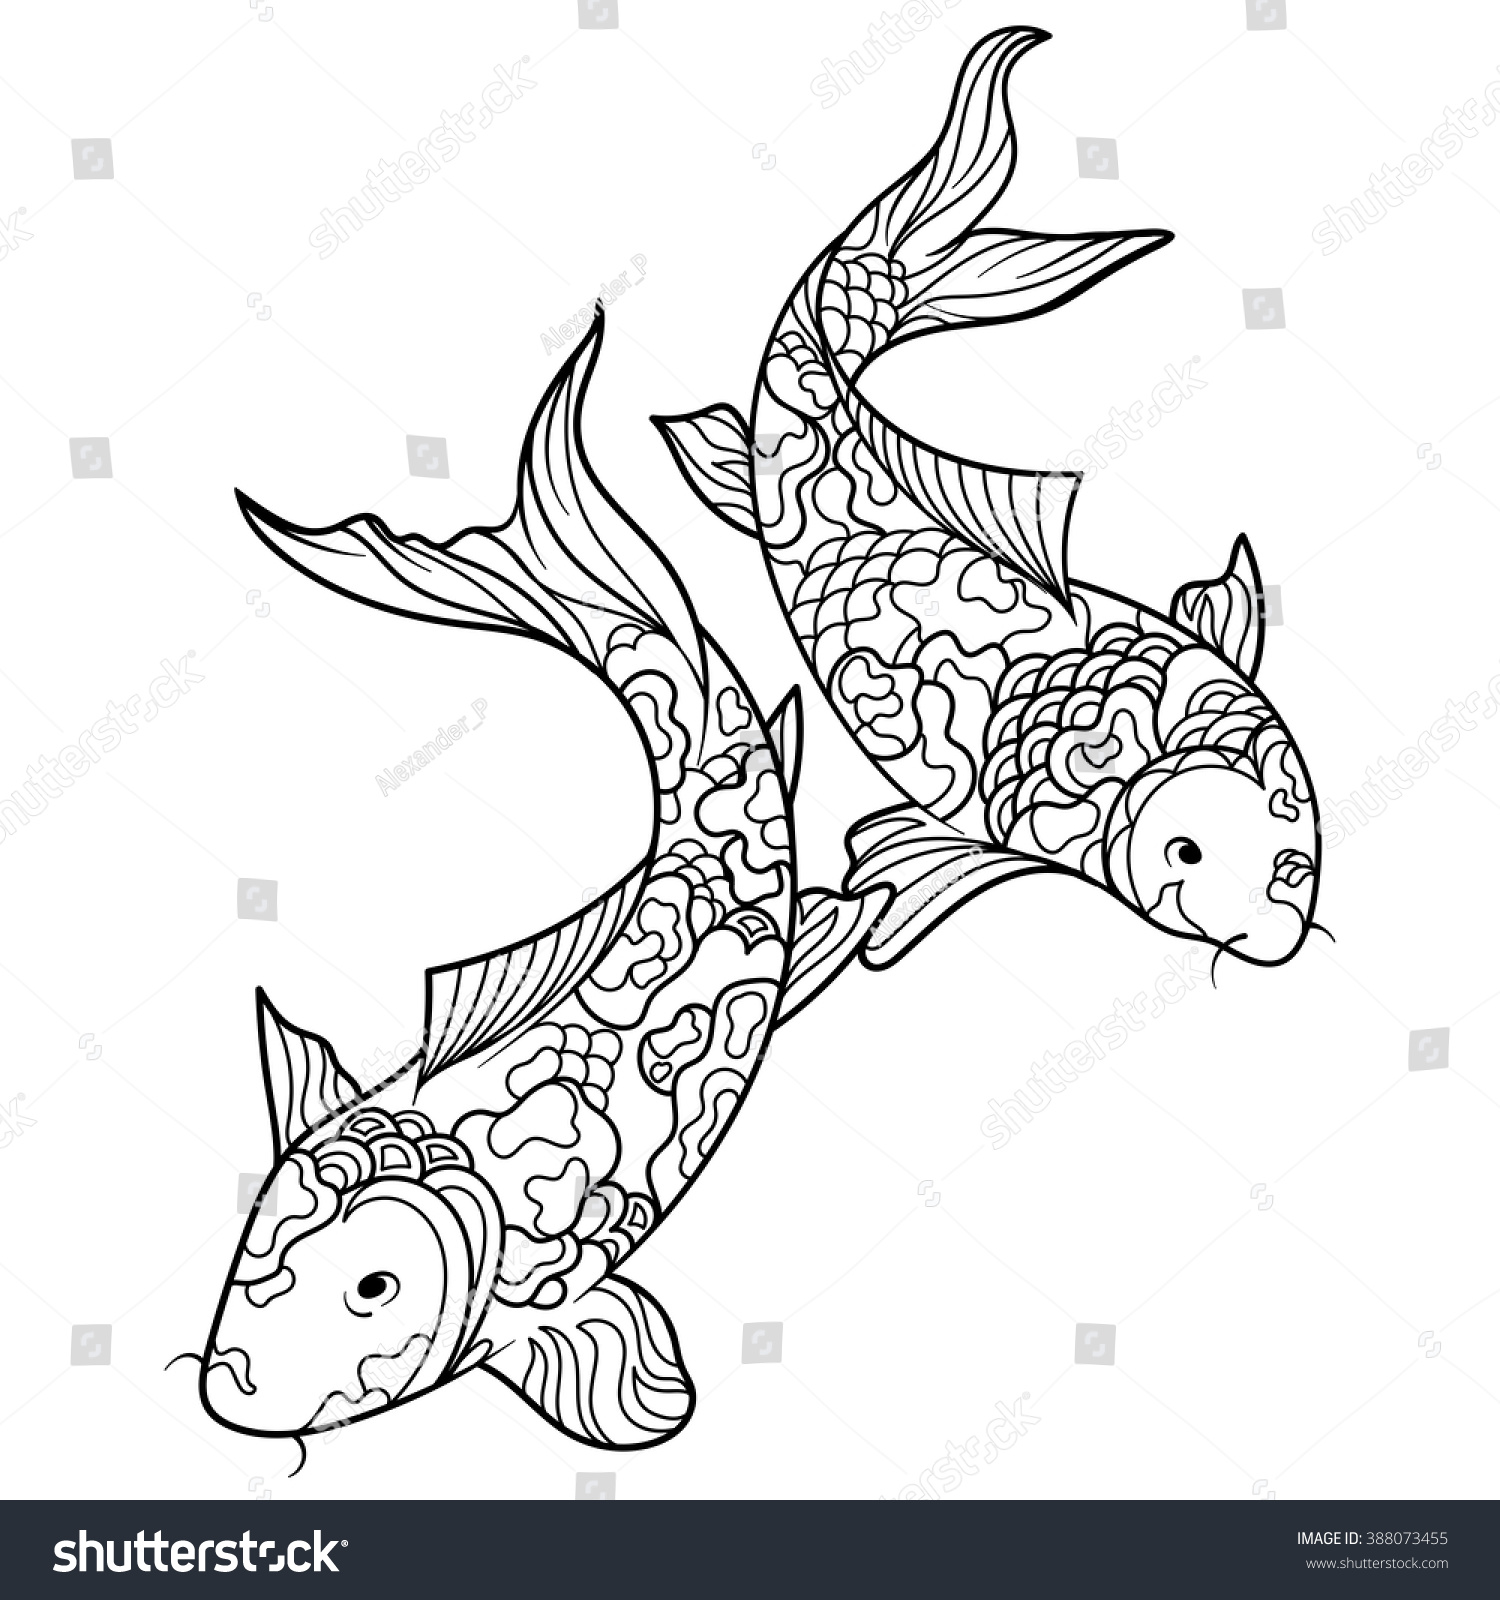 Koi Fish Coloring Page Colouring Pages Of Koi Fish Bass